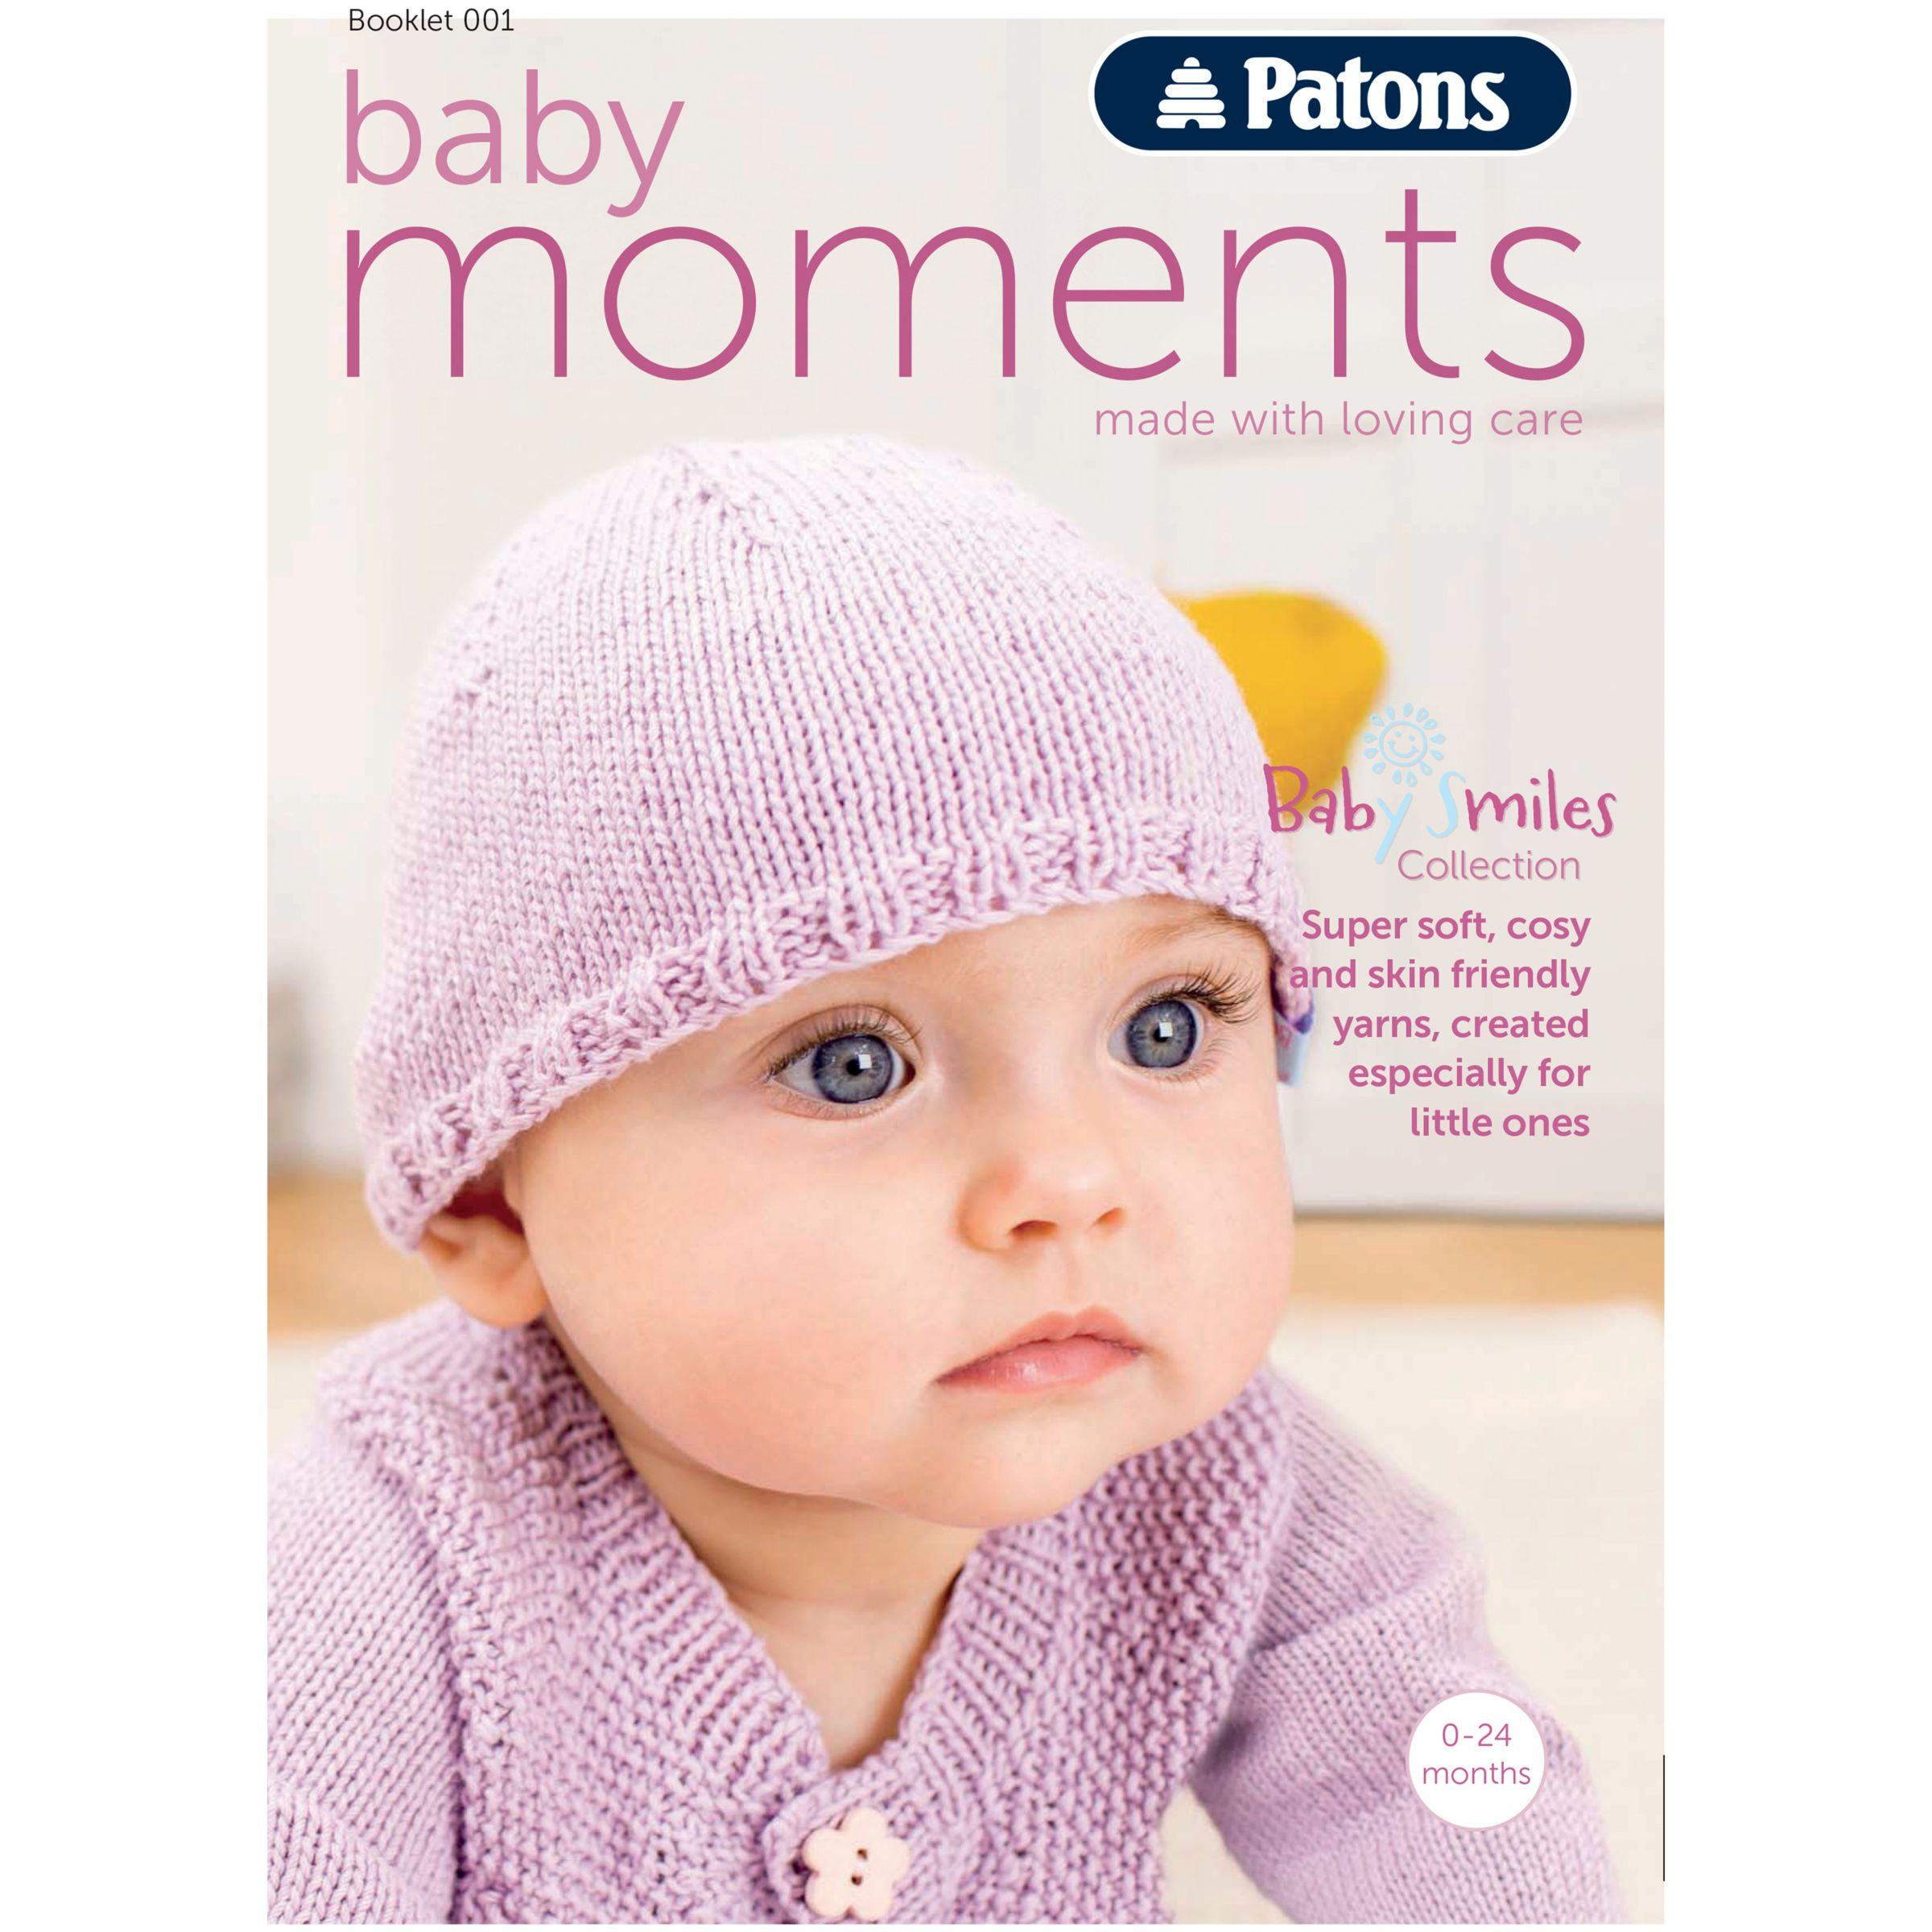 Patons Patons Baby Moments Knitting Pattern Booklet, 002